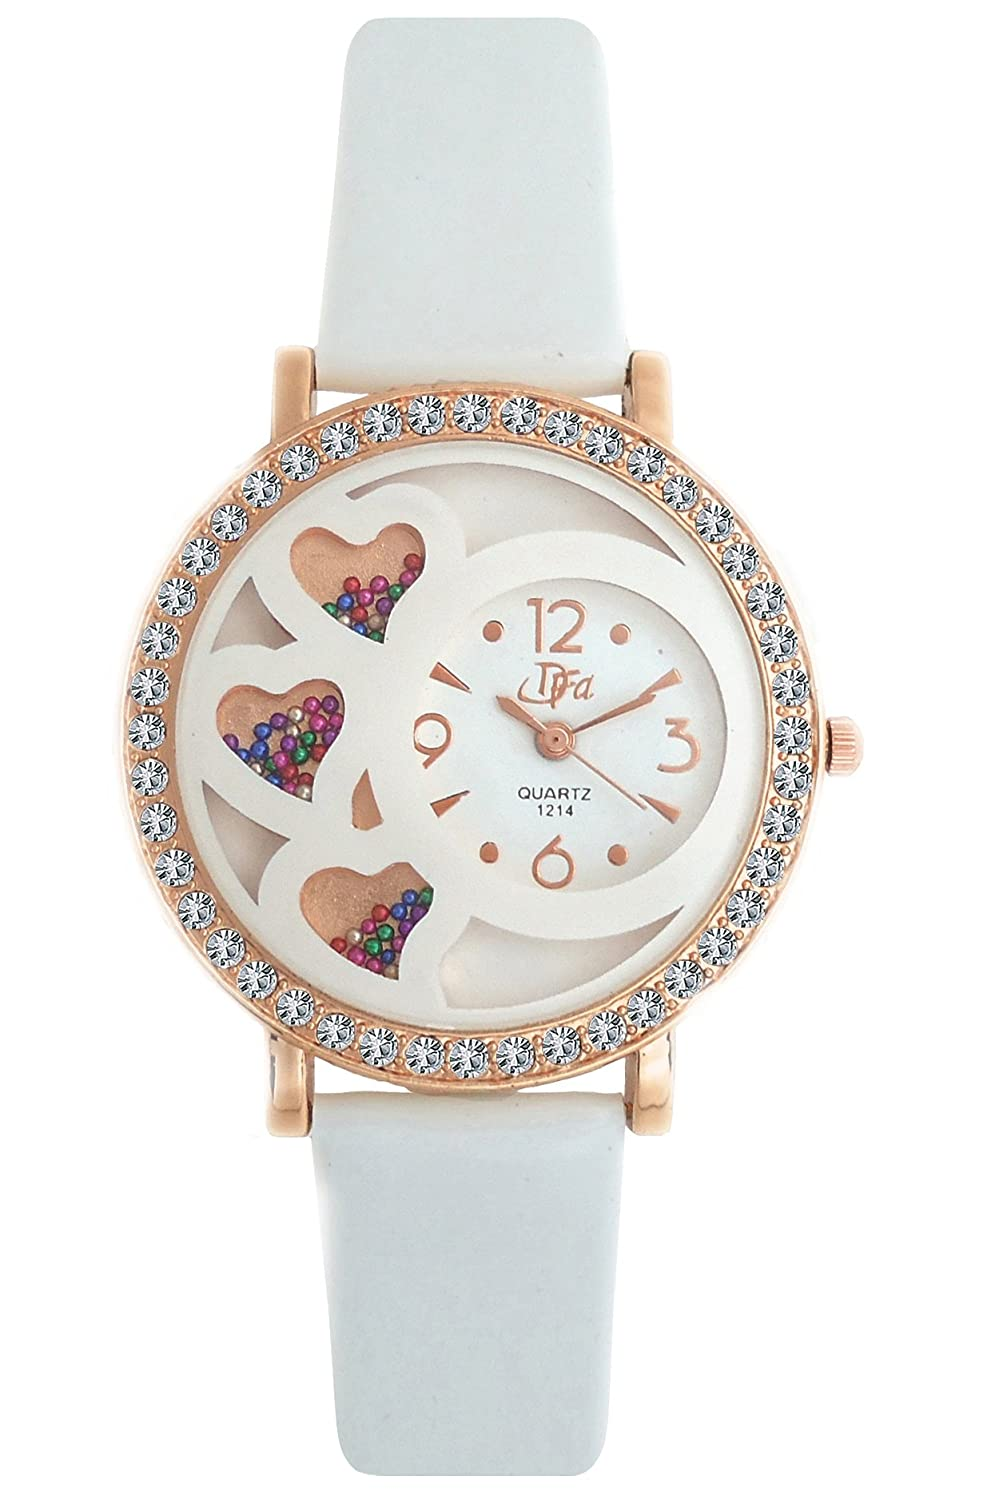 DFa Rose Gold White Heart Dial White Strap Analogue Watch for ...